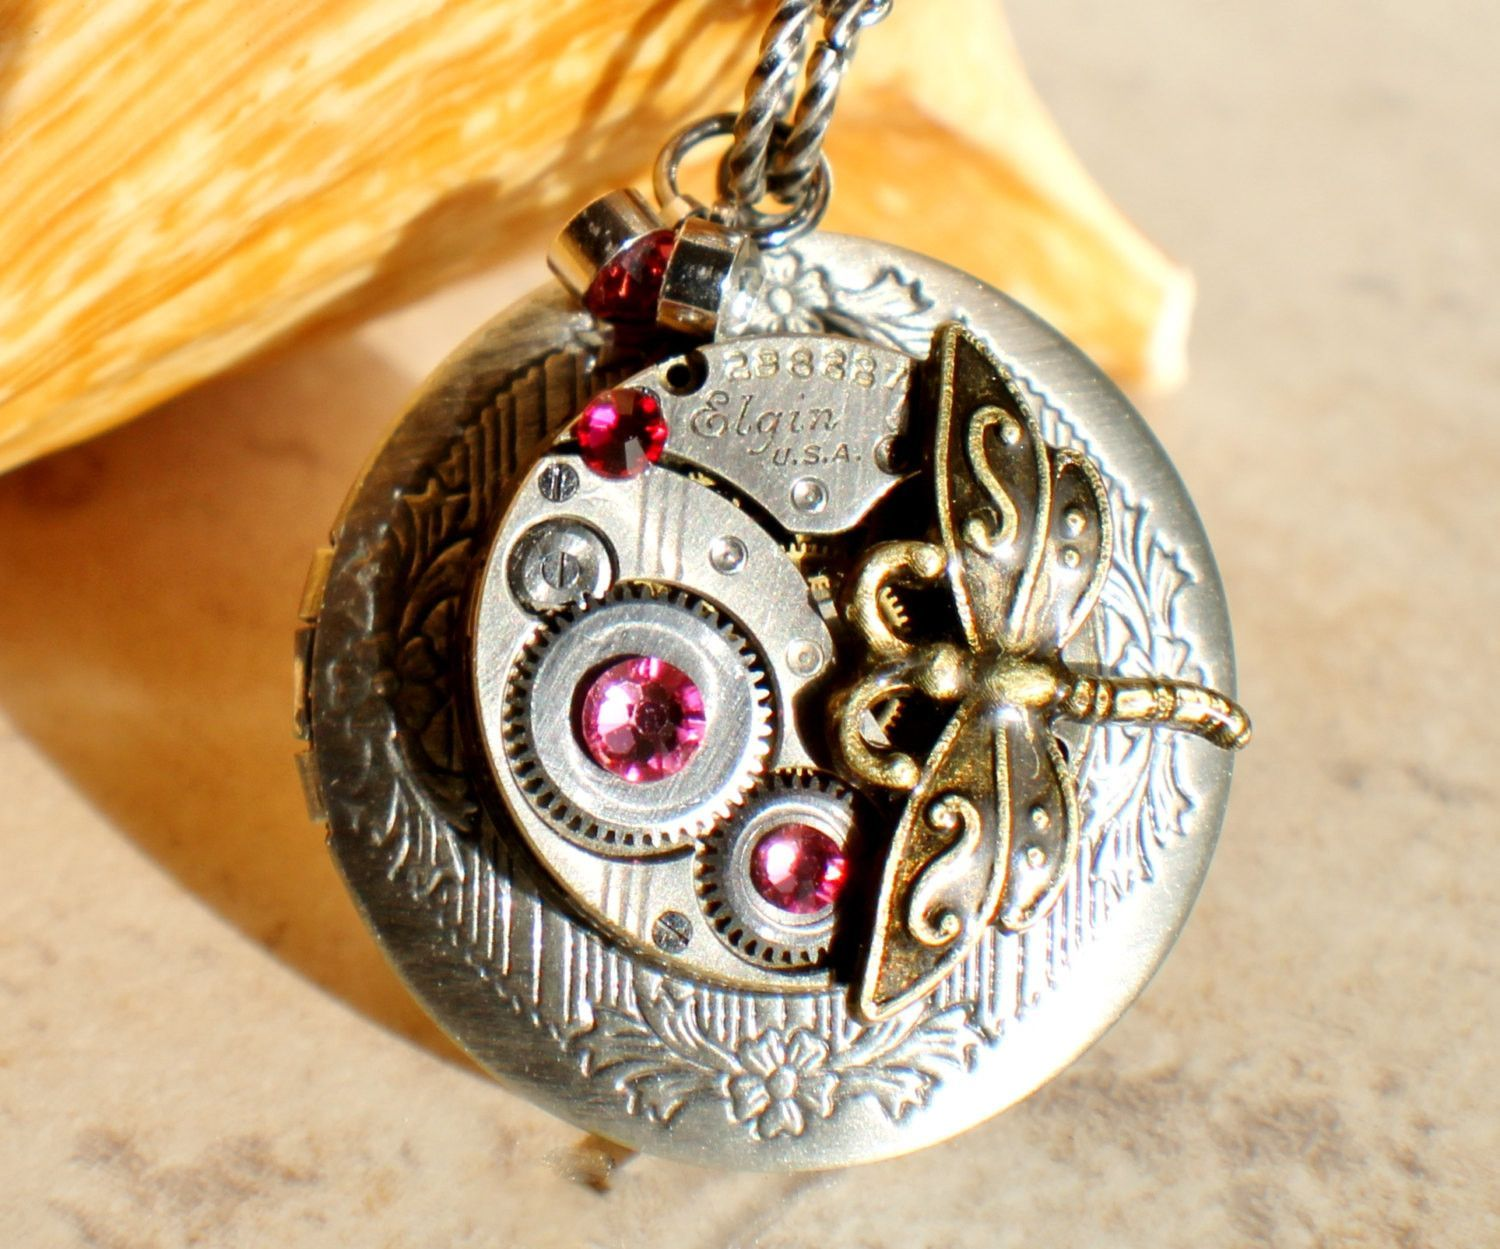 on with by and freeman watch charms pinterest create pin locket their personalized origami vivian charm adorable a lockets story owl